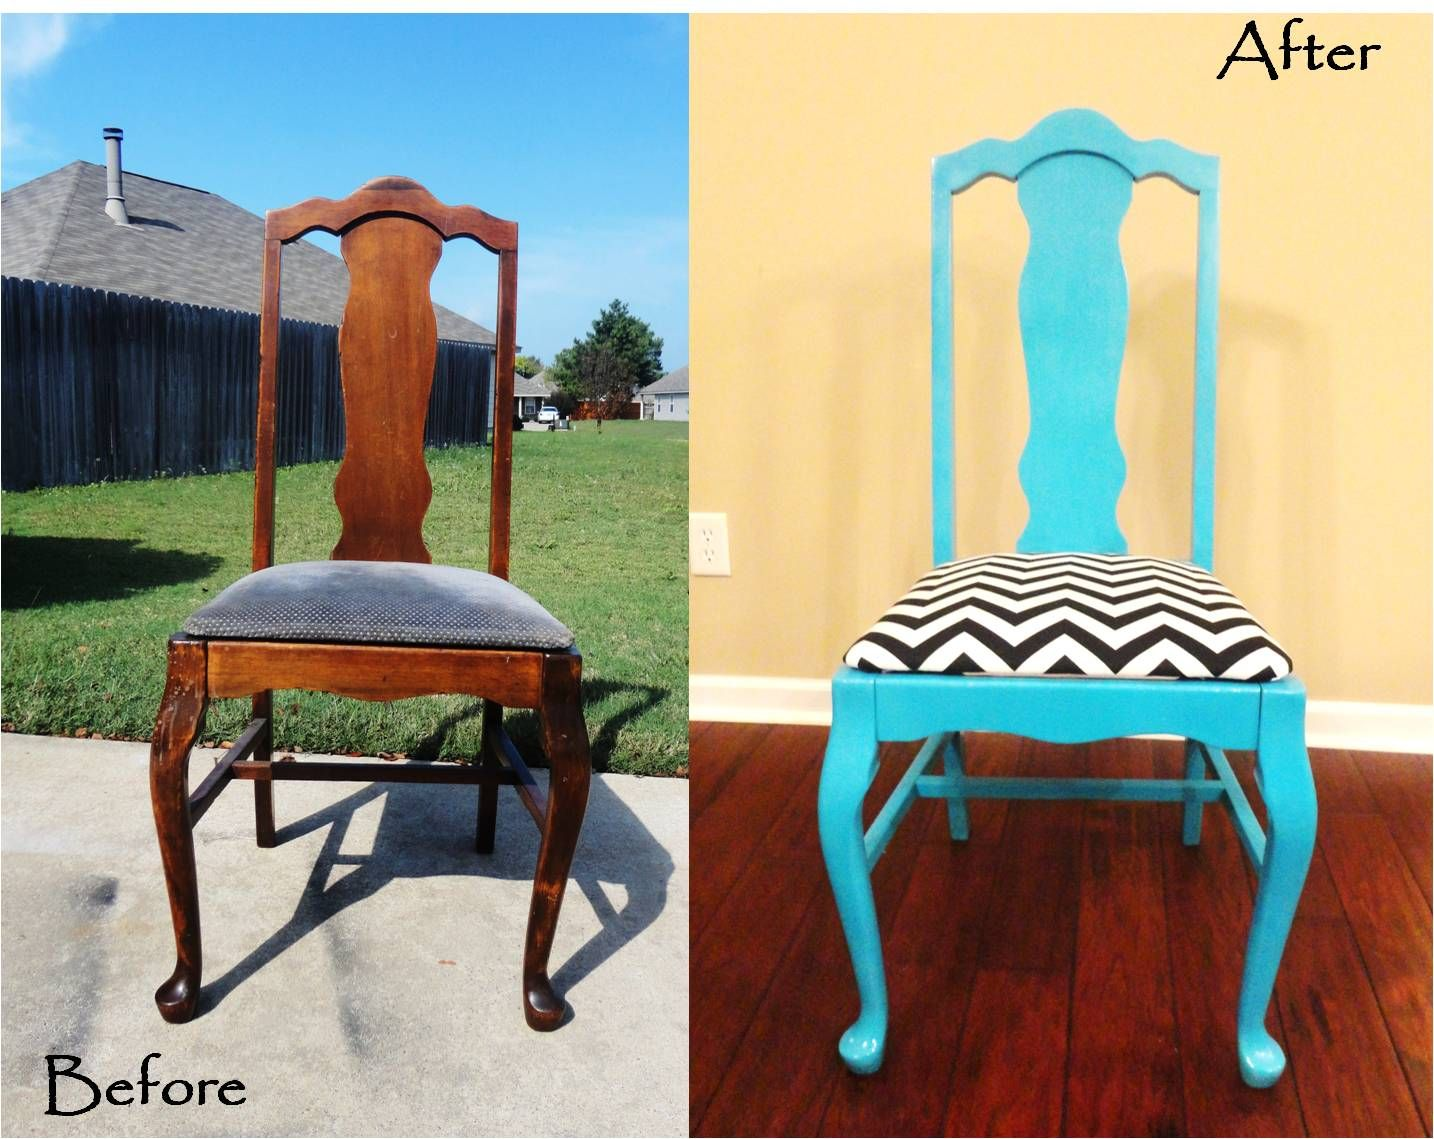 Refurbished Chairs On Pinterest Wooden Chair Redo Refurbished End Tables And Refurbished